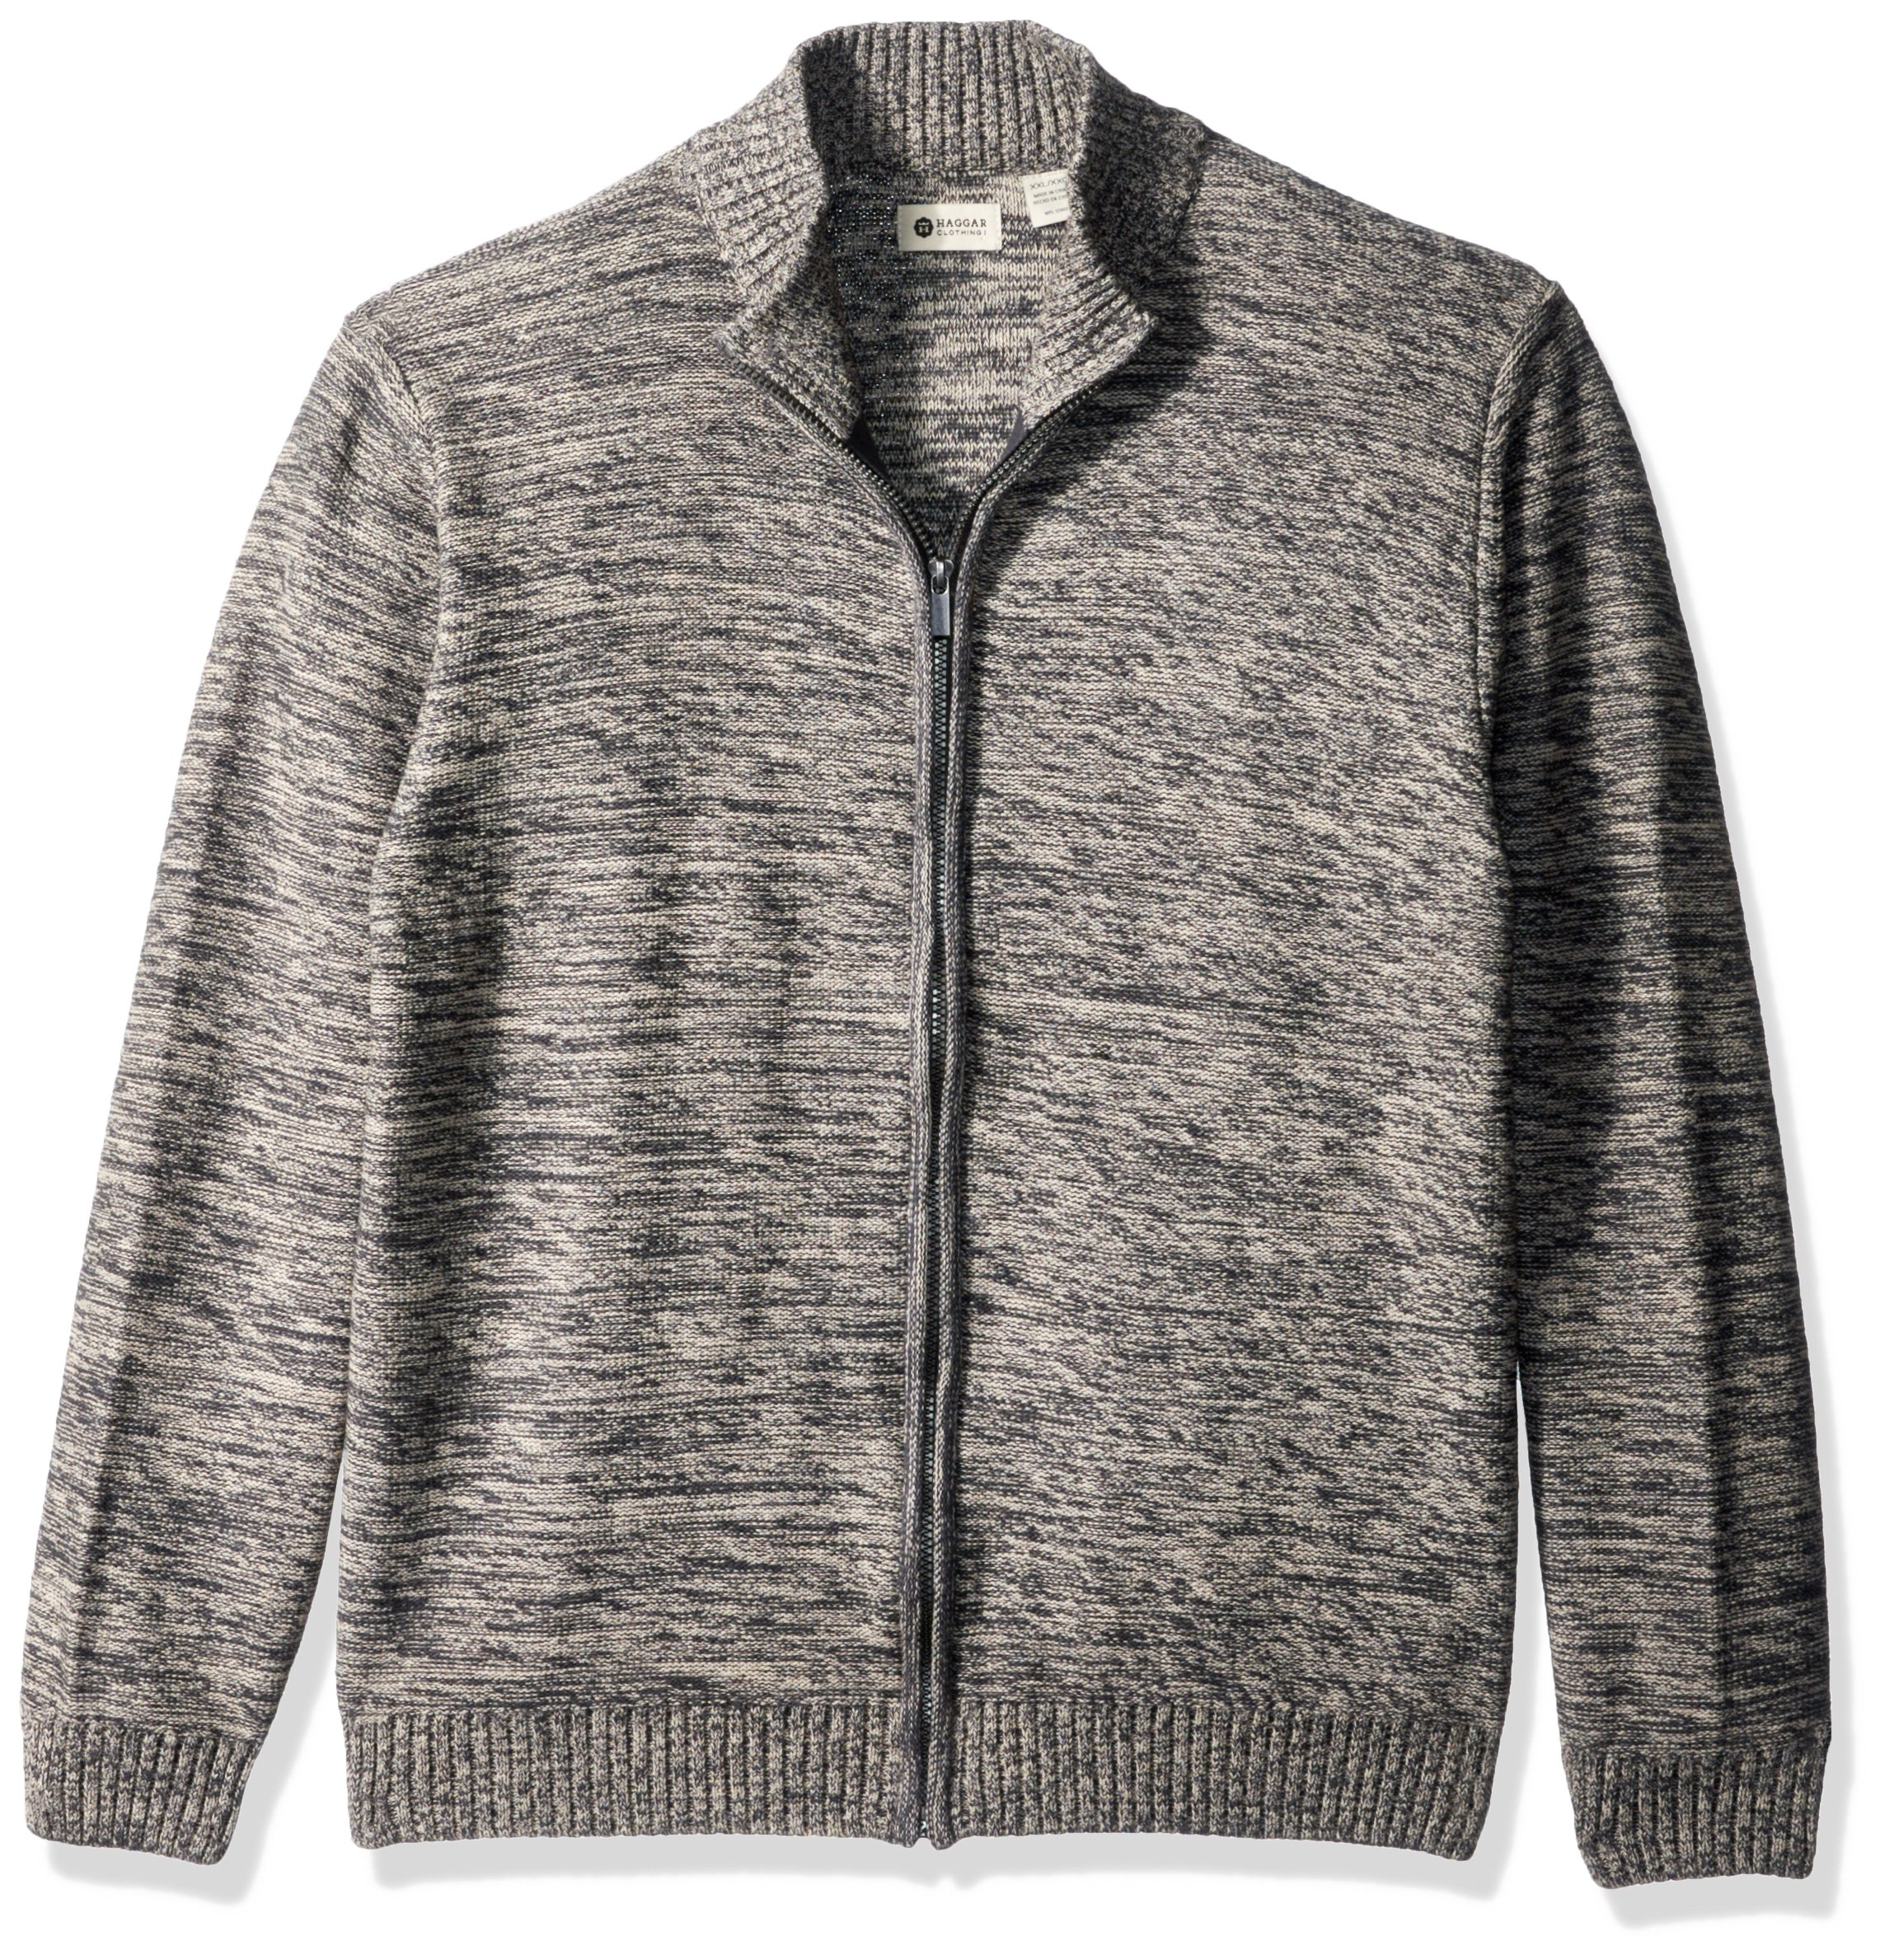 Haggar Men's Reverse Jersey Mechanical Marl Full Zip Sweater, Moon Marl, L